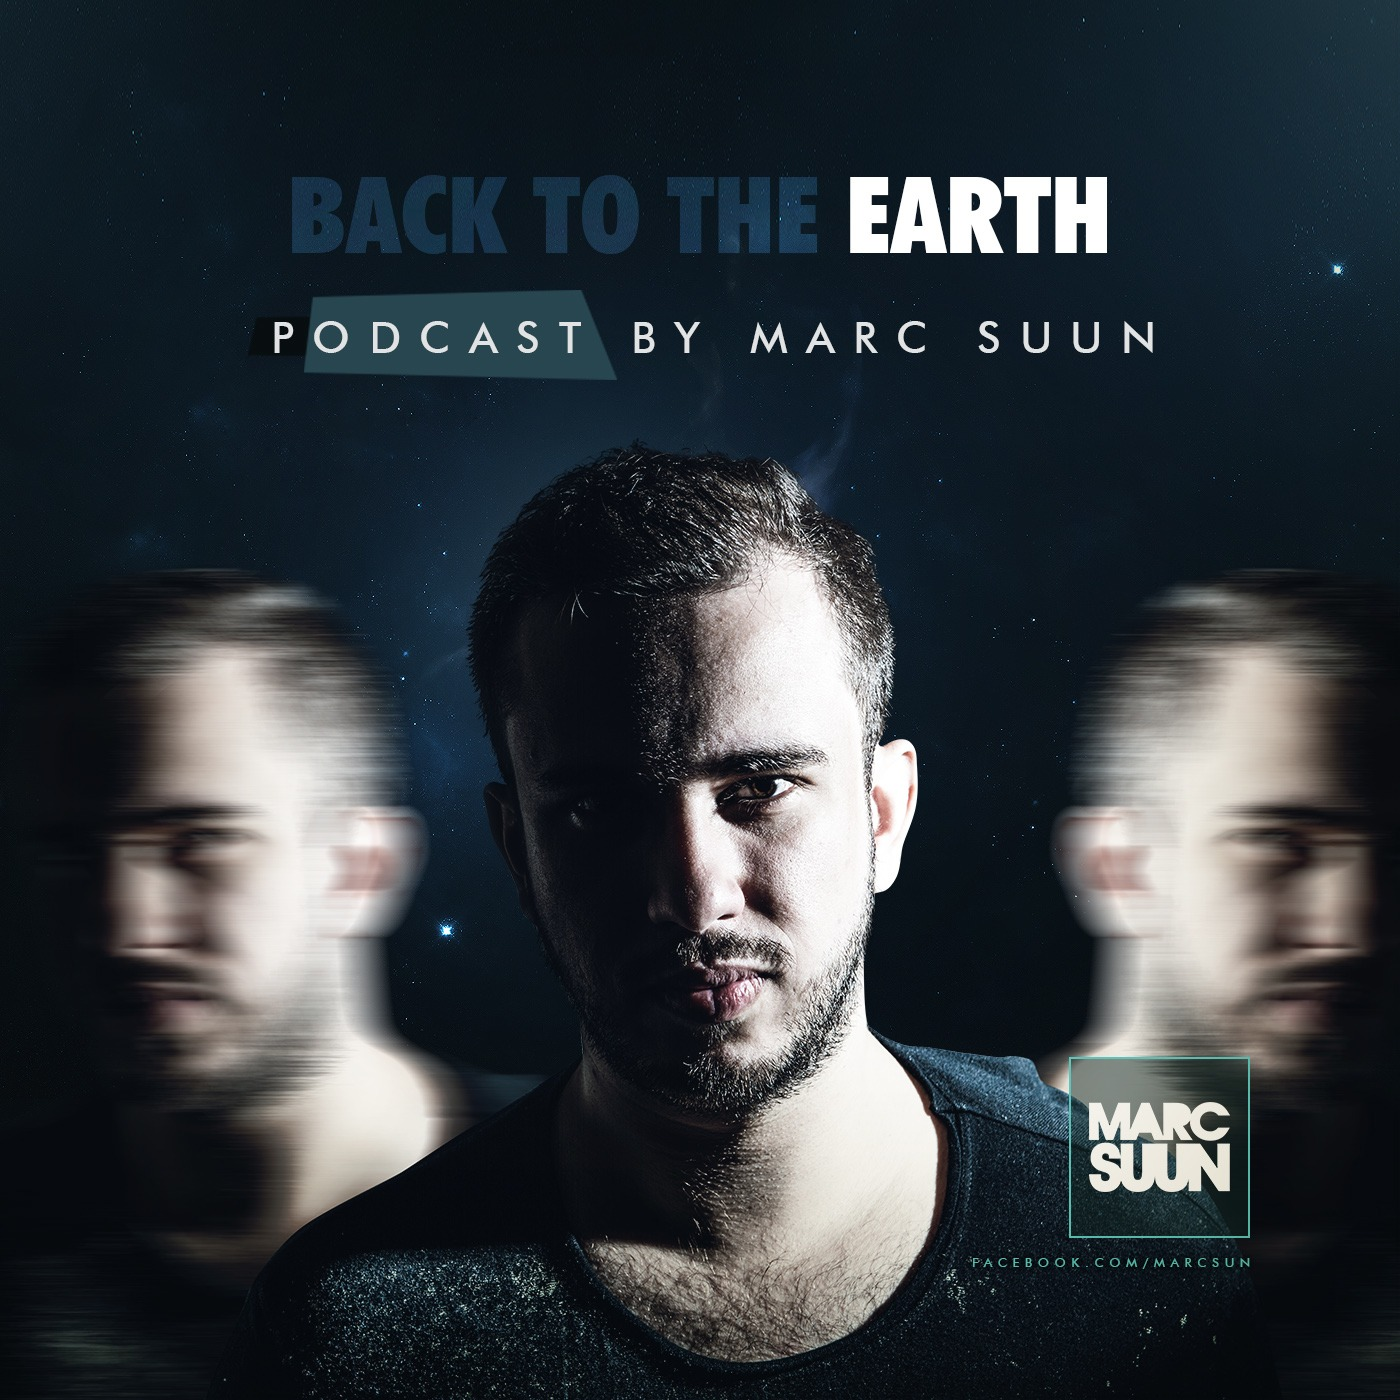 Back To The Earth by Marc Suun